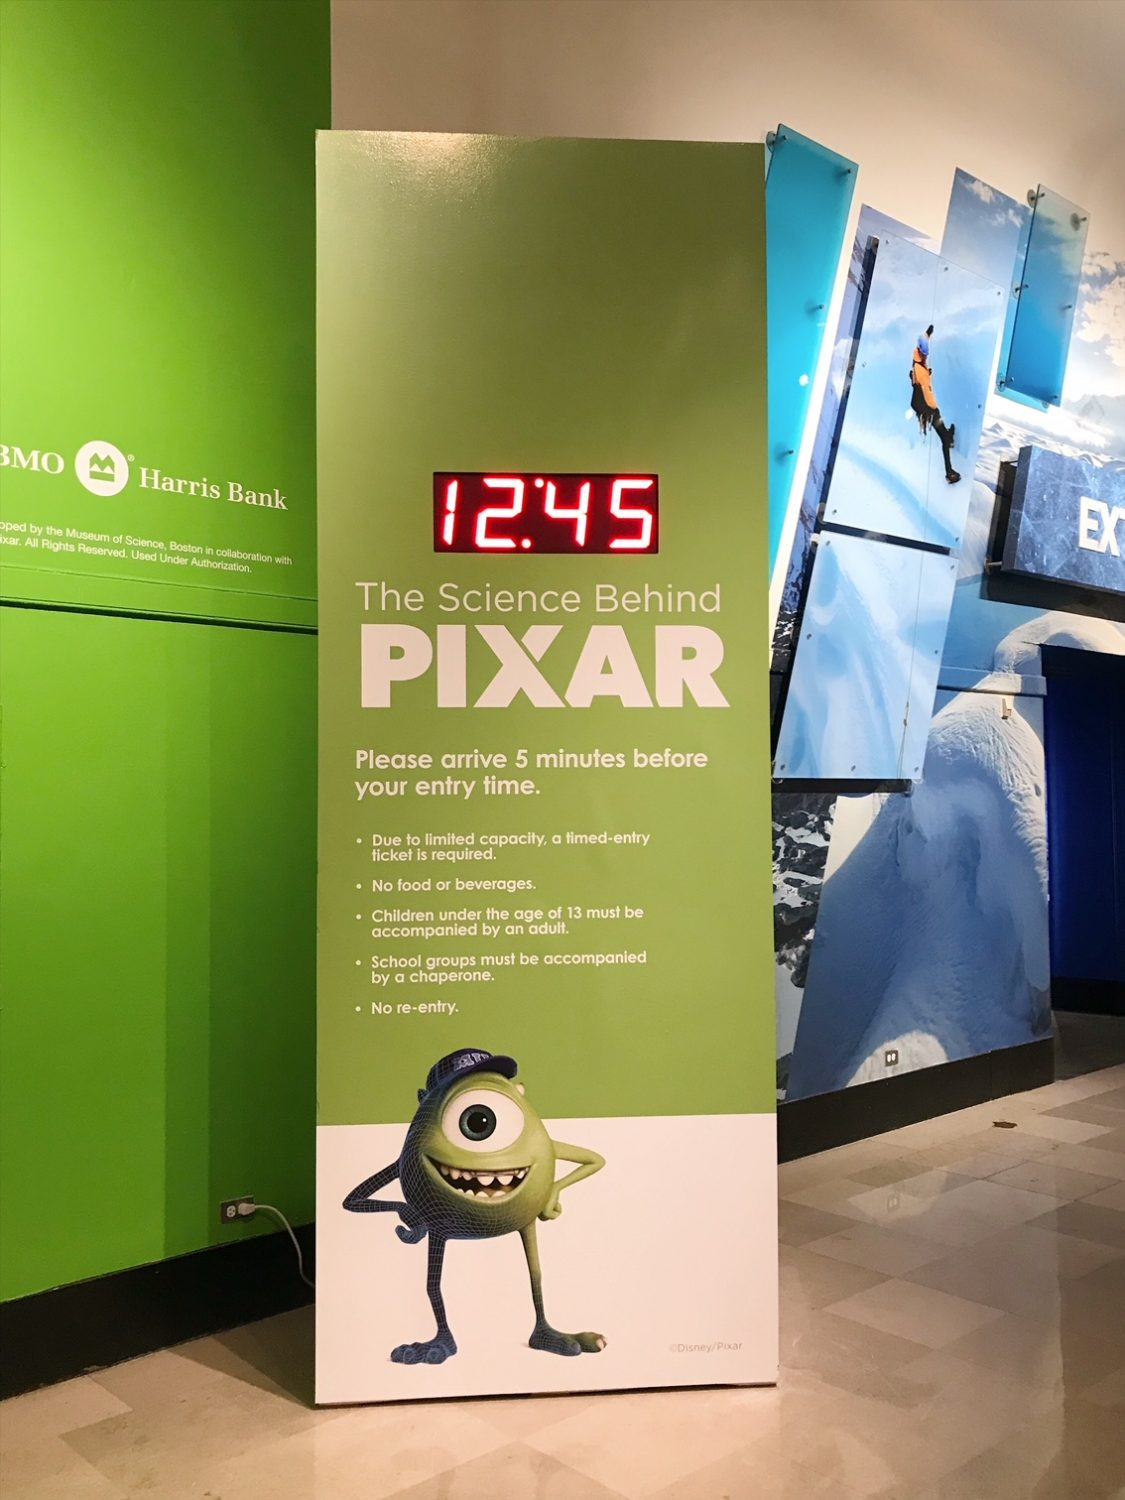 The Science Behind Pixar At The Museum Of Science And